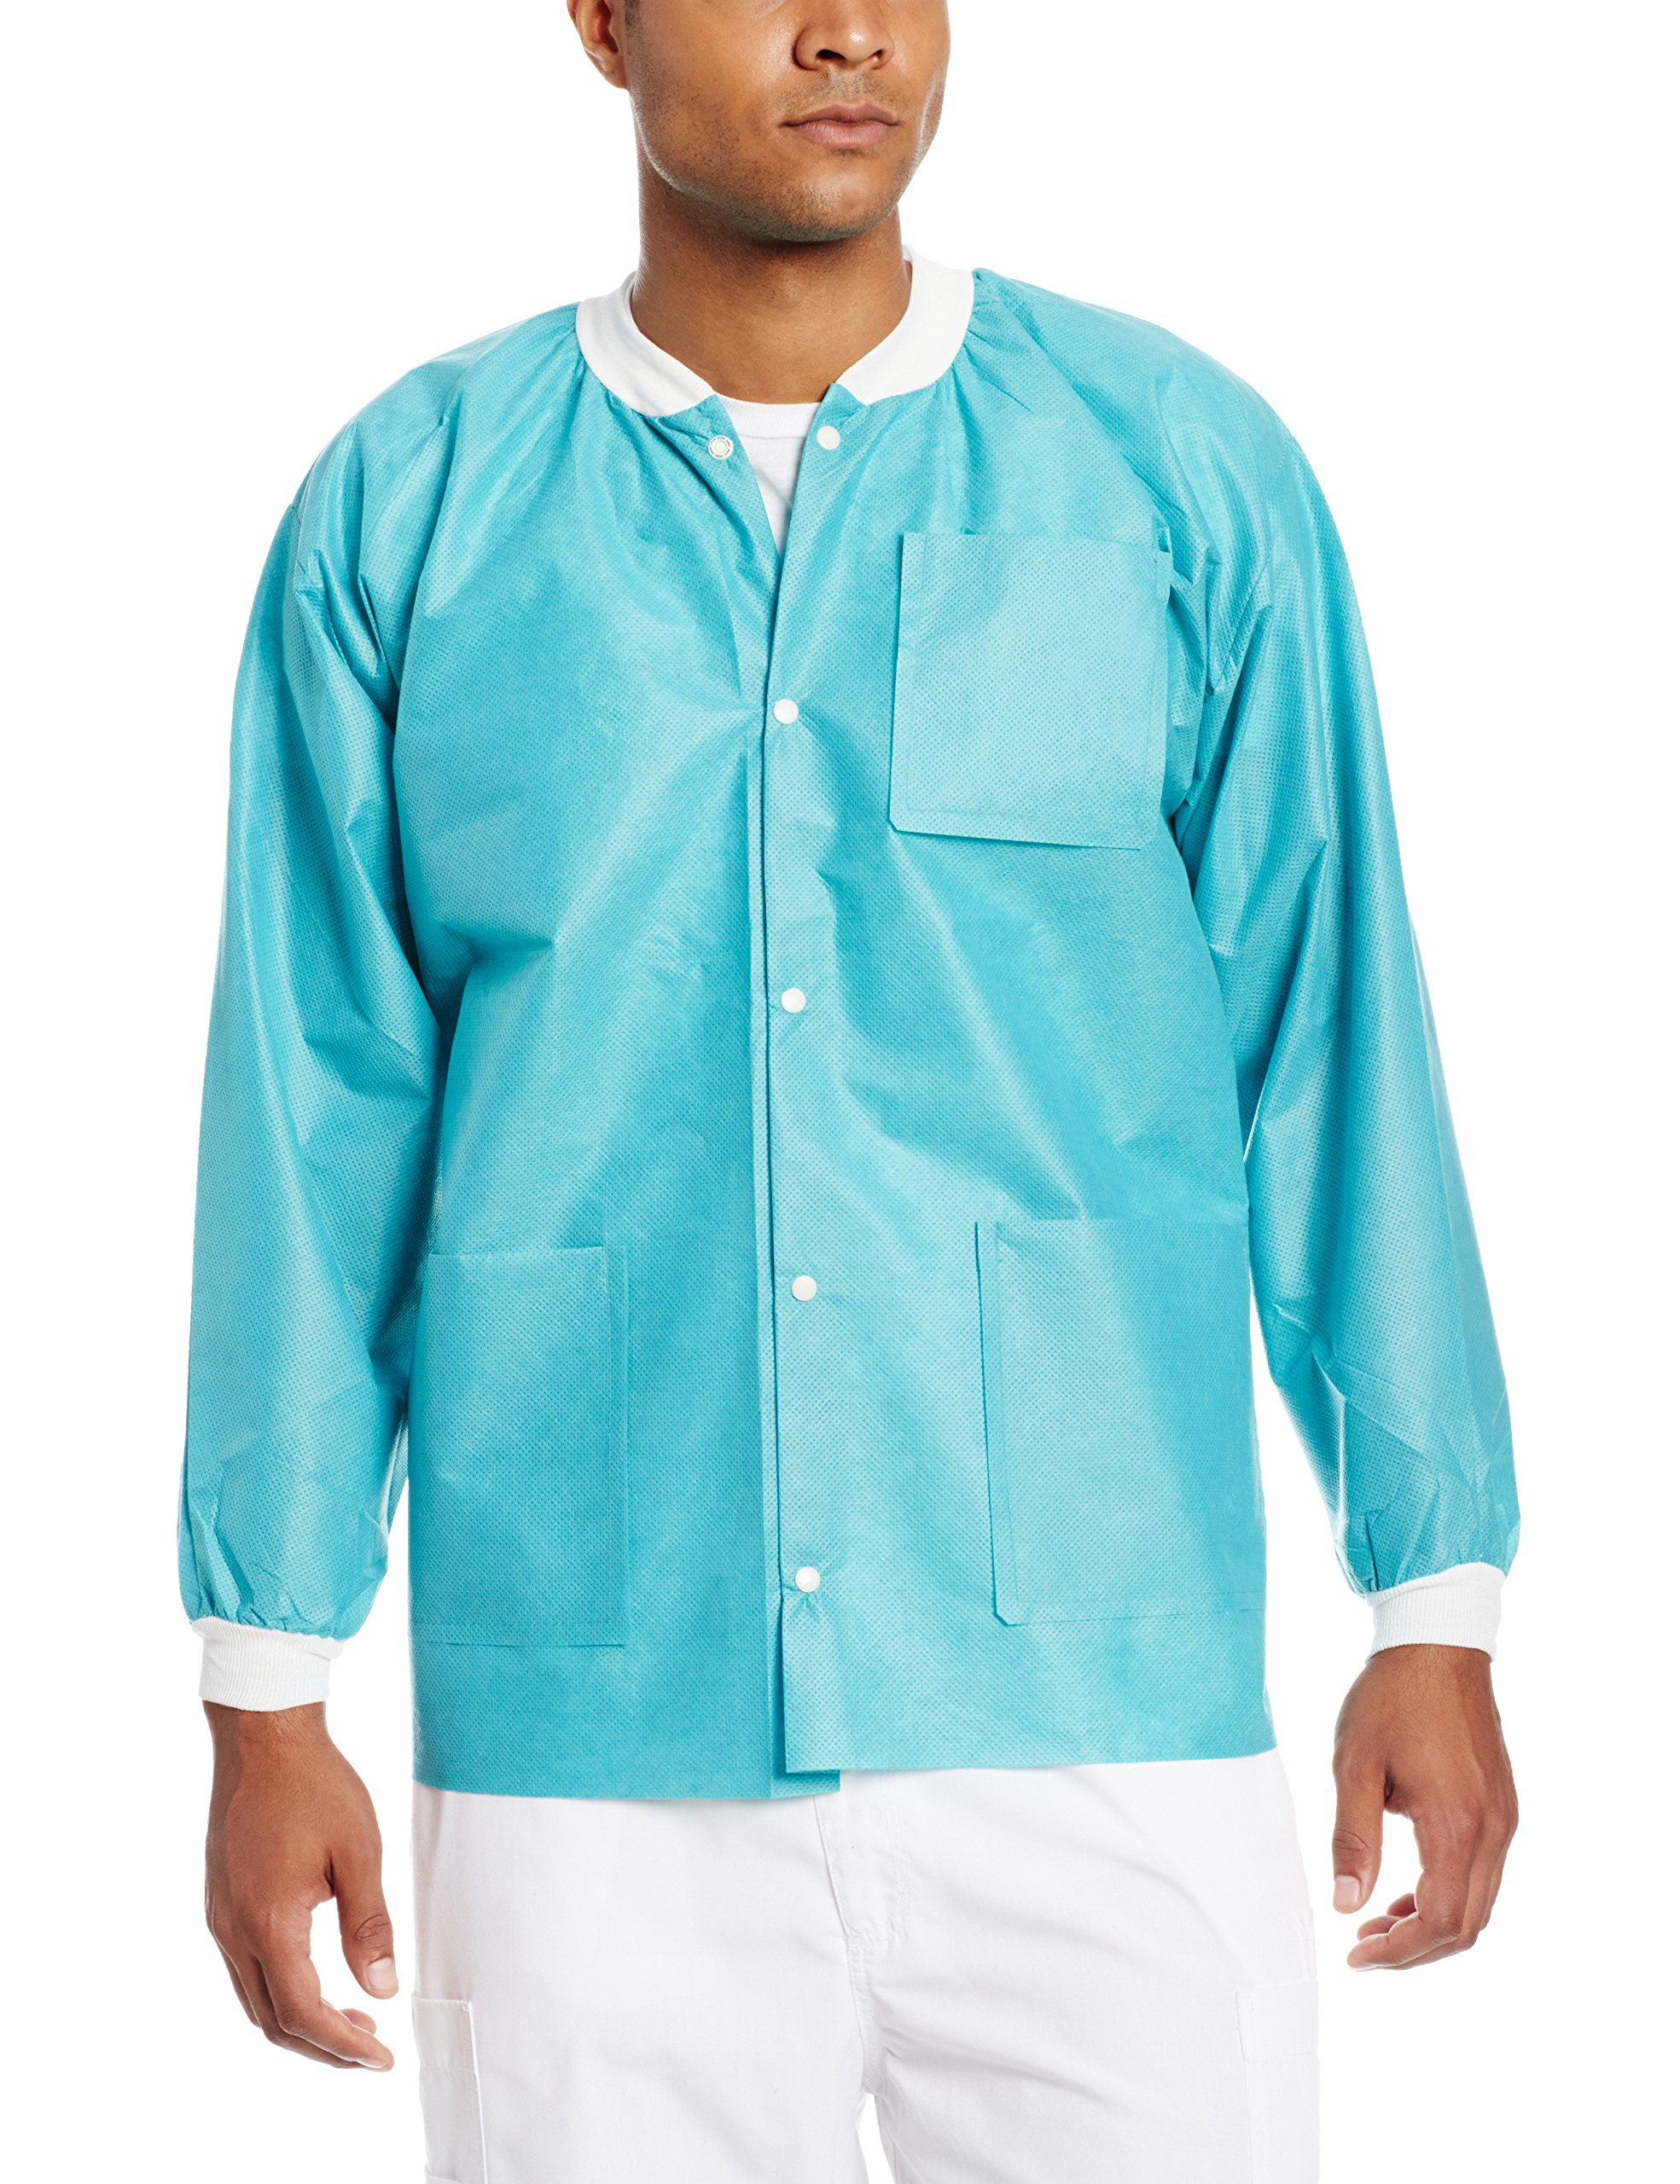 ValuMax 3630TEM Extra-Safe, Wrinkle-Free, Noble Looking Disposable SMS Hip Length Jacket, Teal, M, Pack of 10 by Valumax (Image #1)